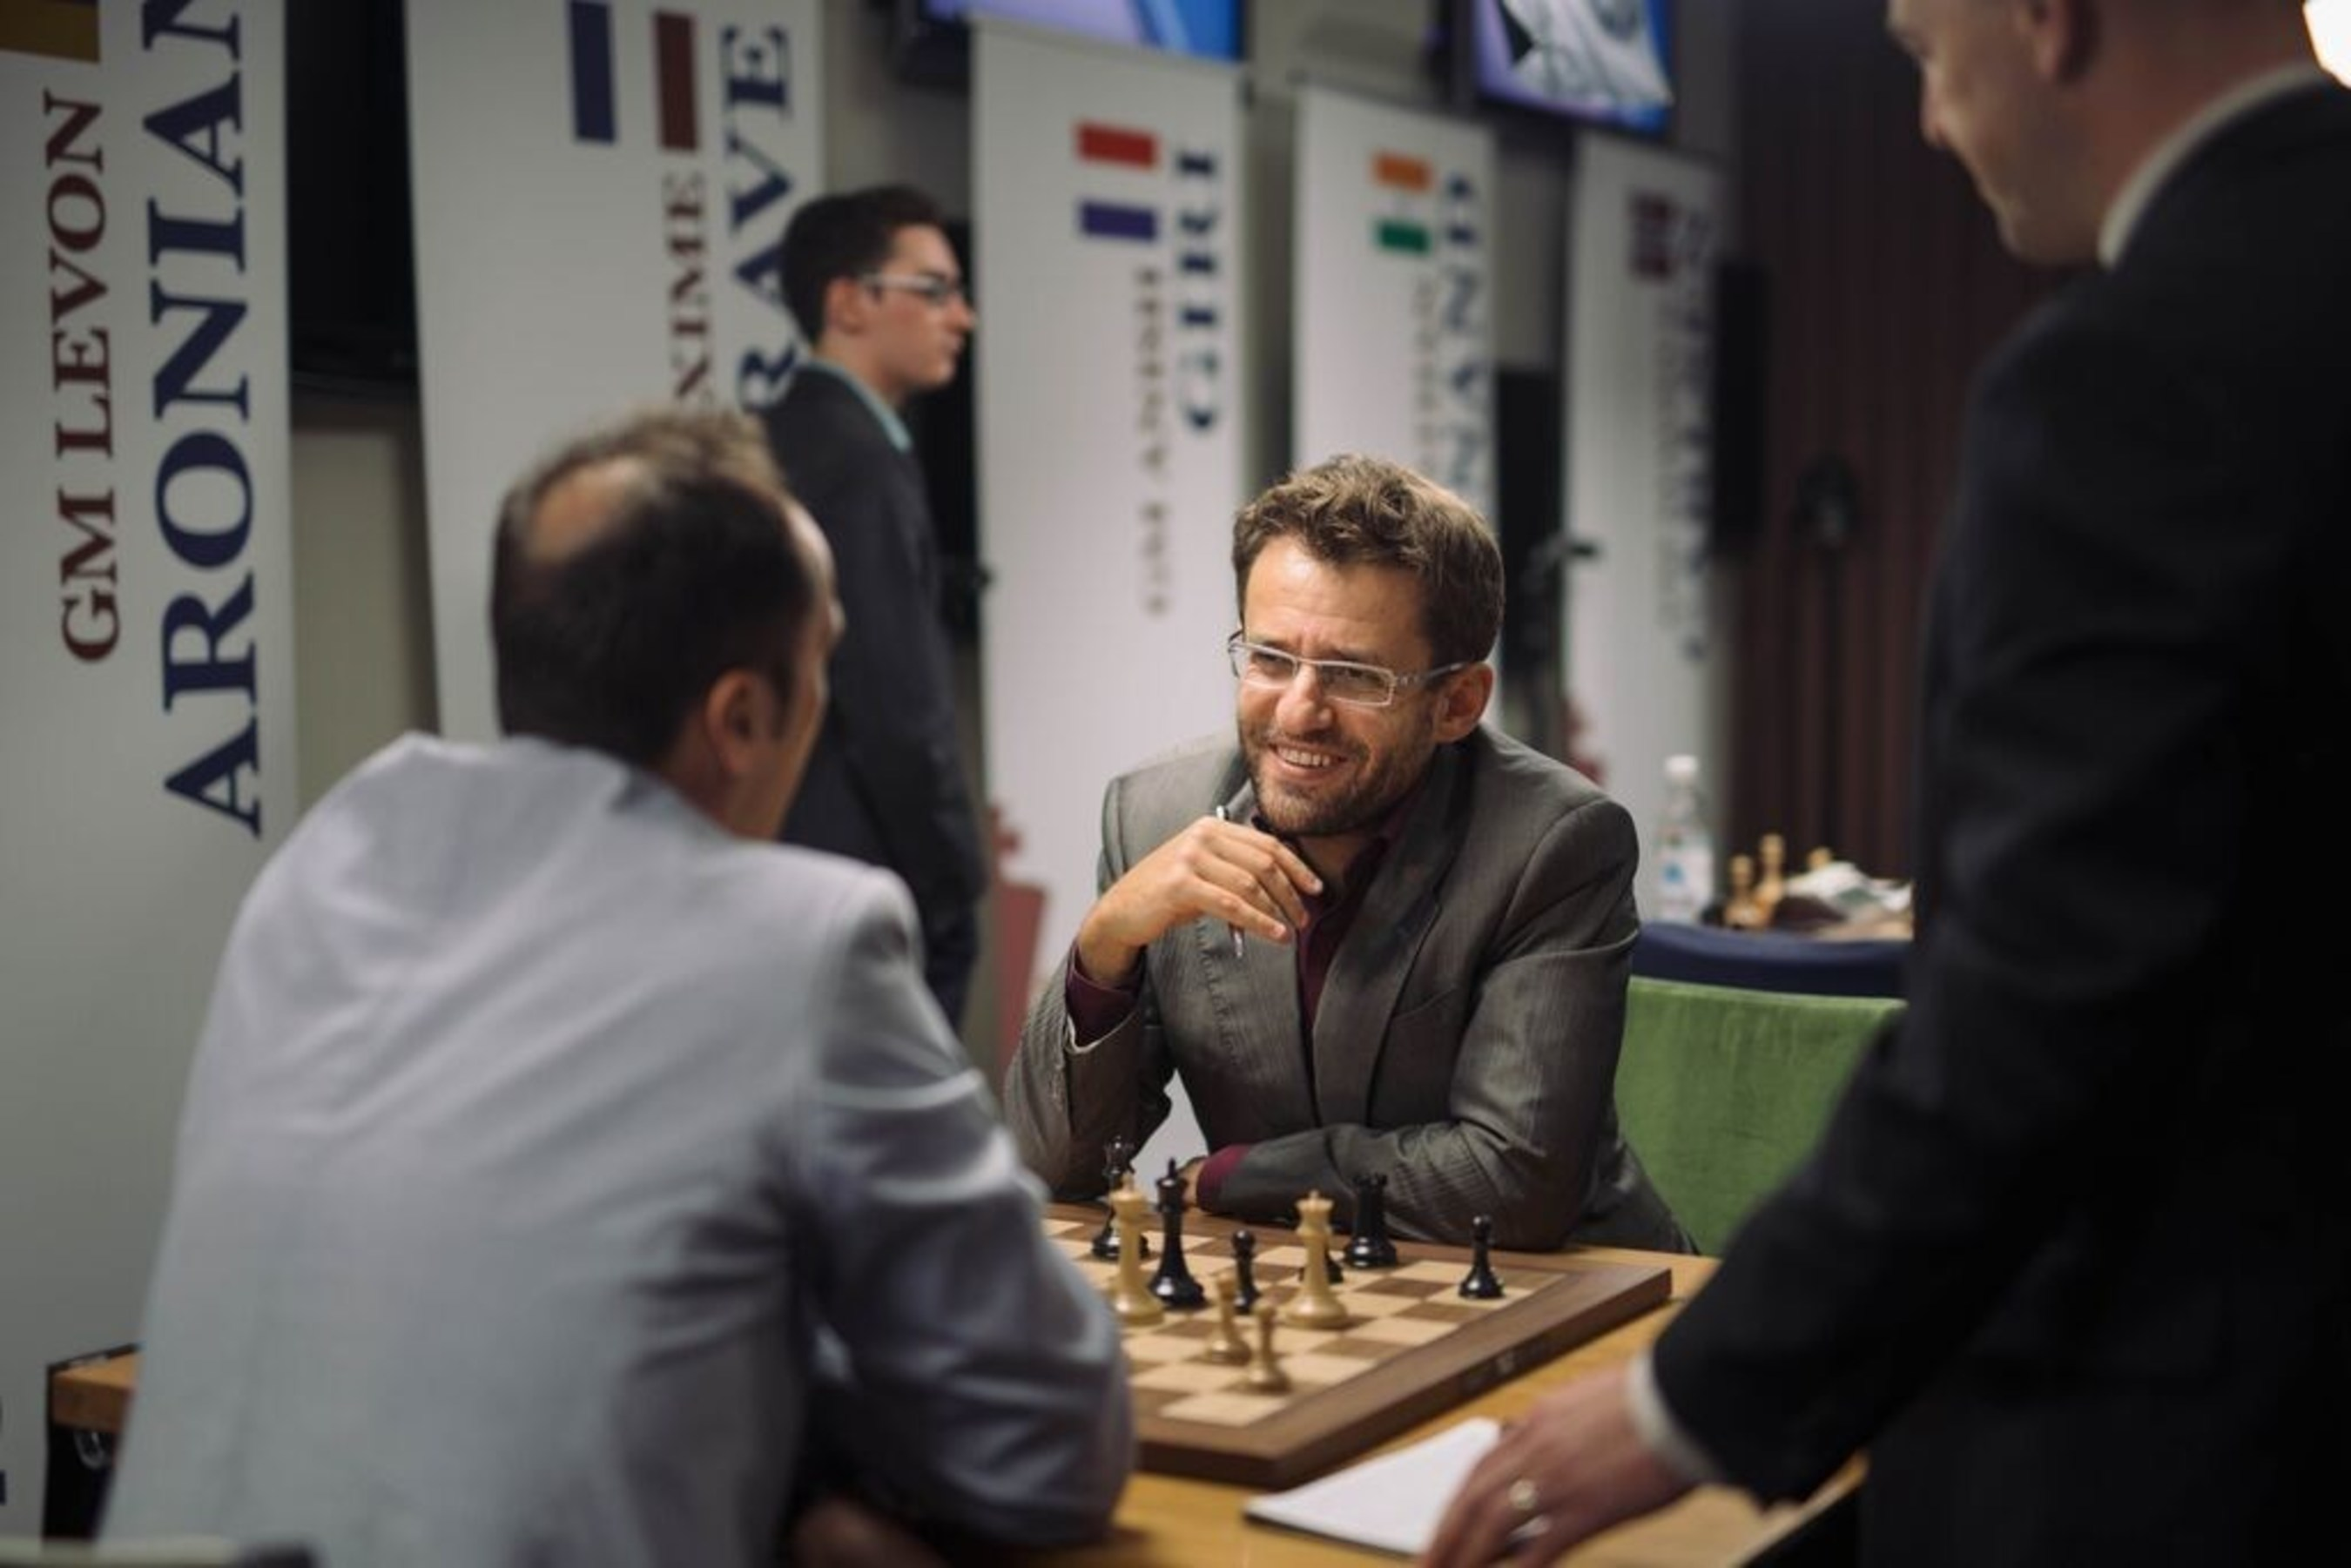 In the final match of the tournament, Grandmaster Levon Aronian from Armenia beat Grandmaster Veselin Topalov from Bulgaria to become the 2015 Sinquefield Cup champion. Photo credit: Austin Fuller